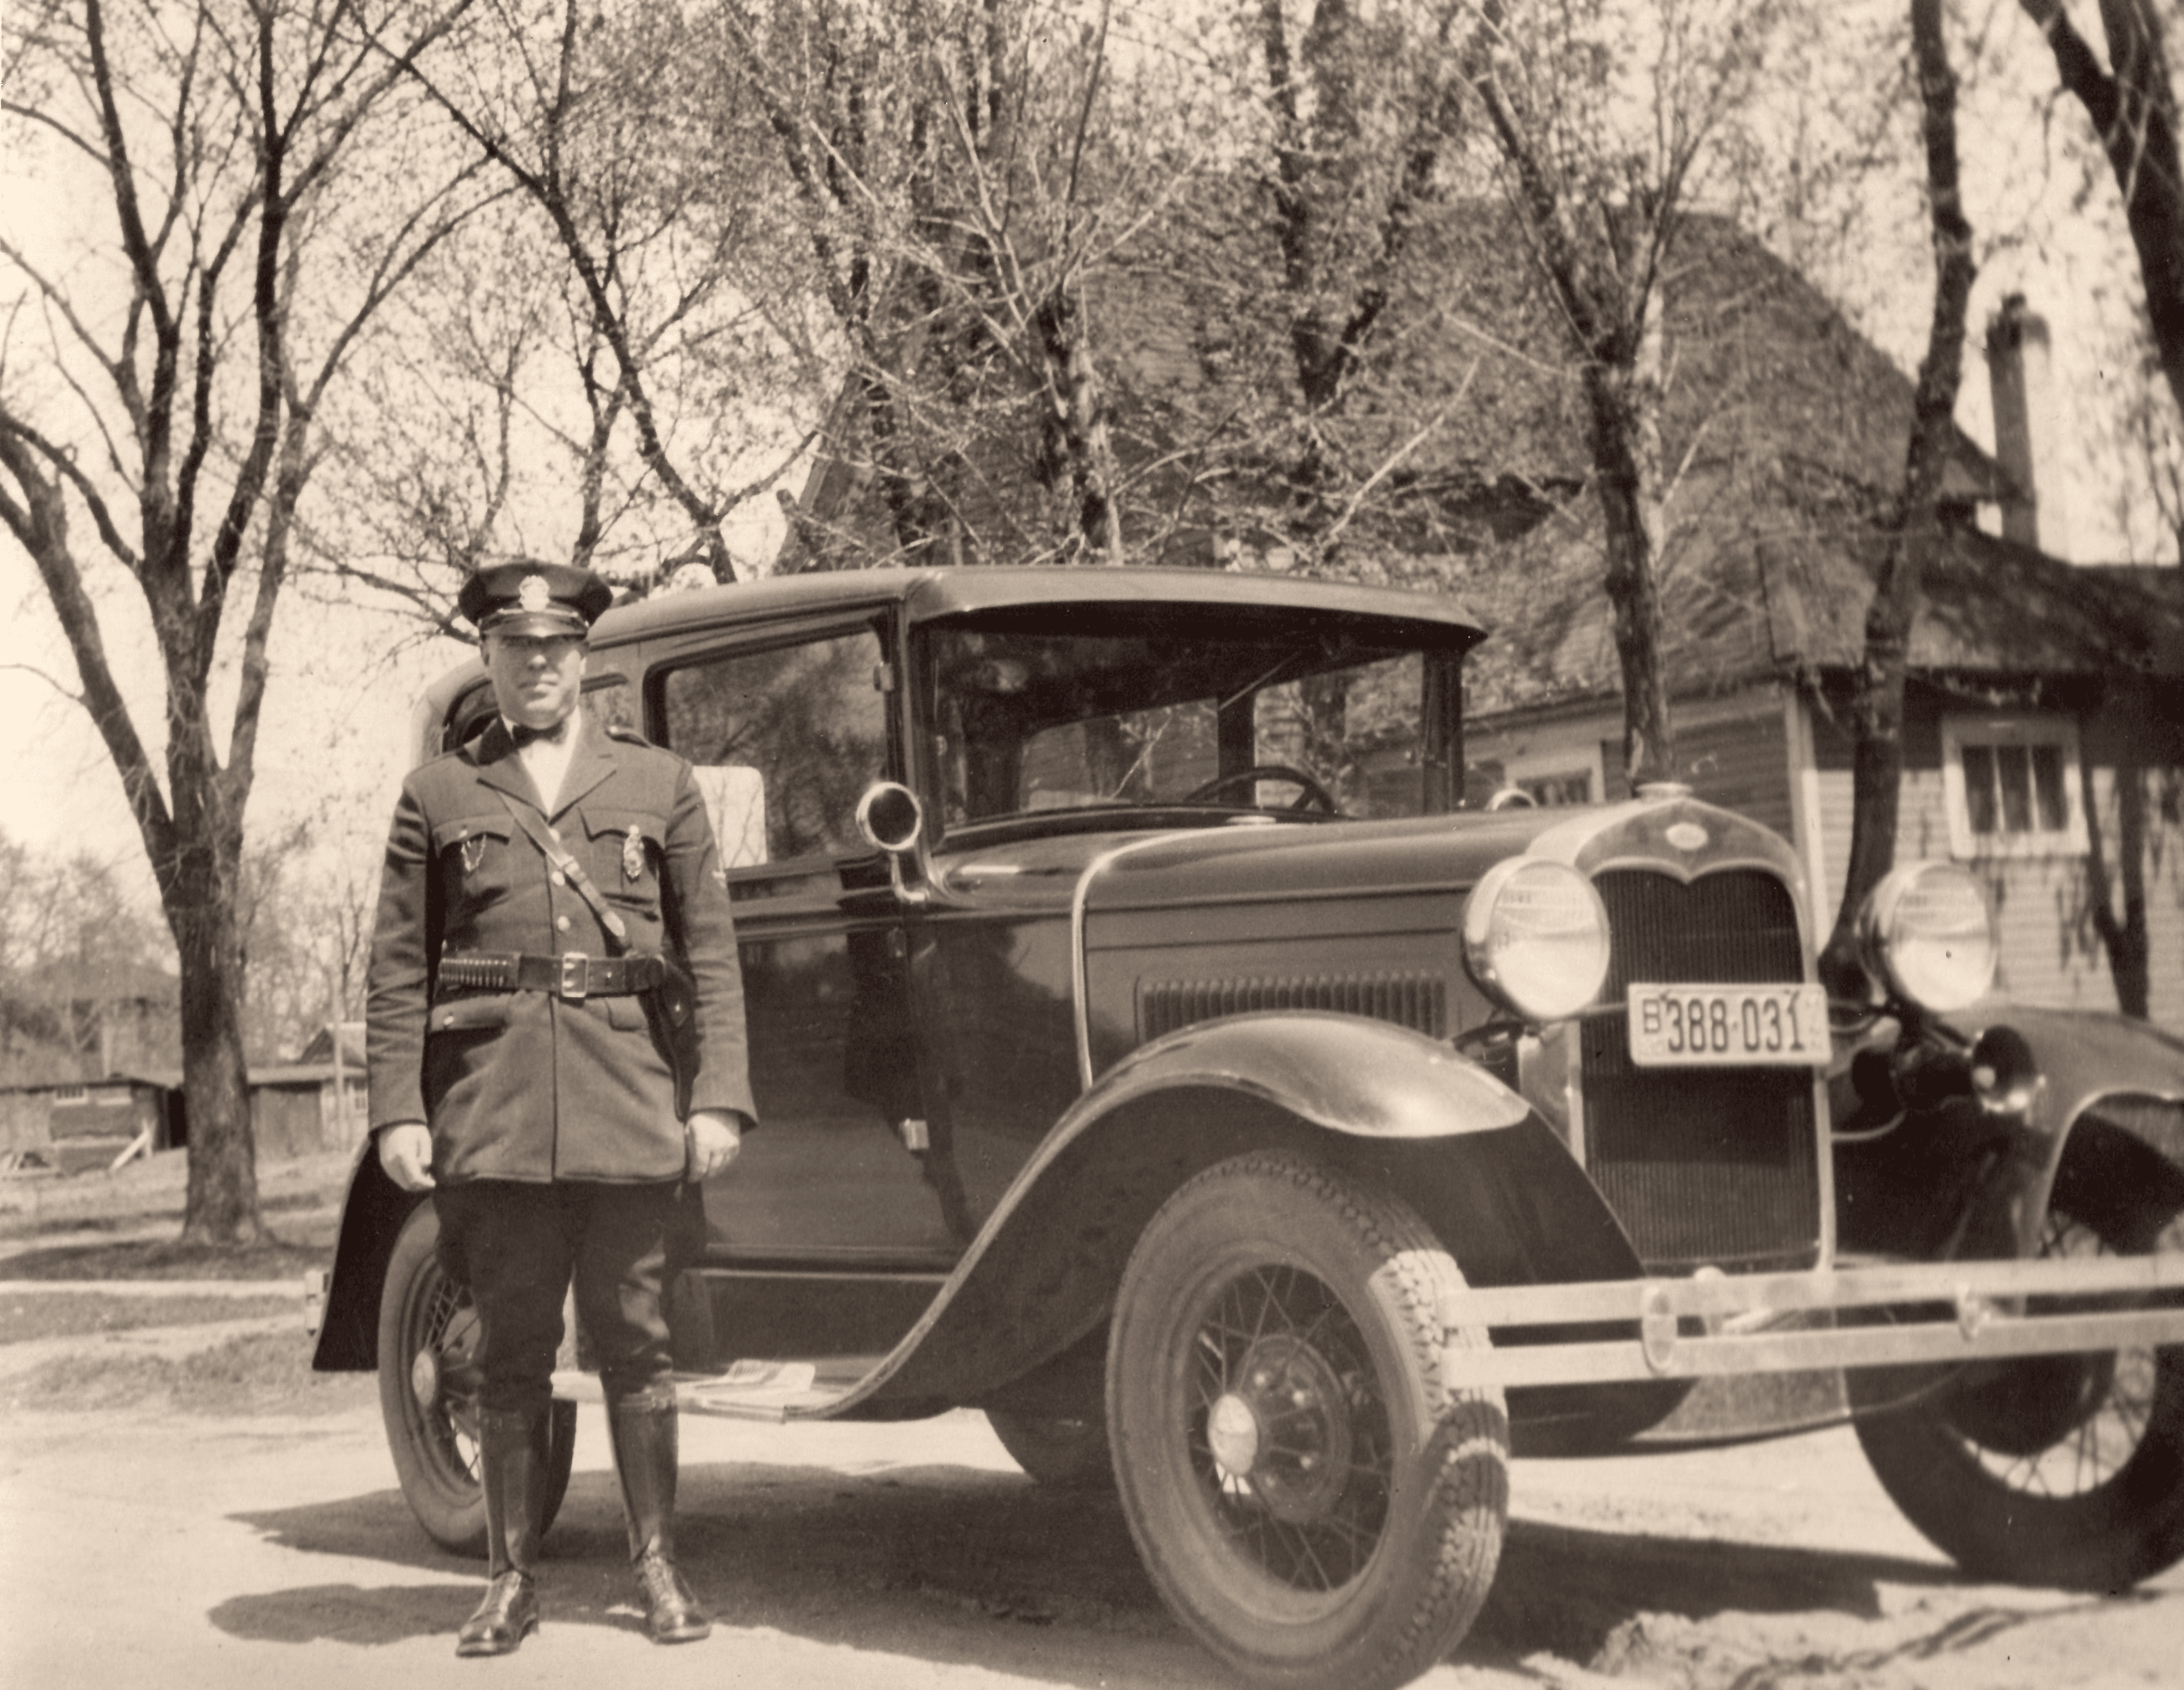 Police Officer with 1935 Ford Squad Car